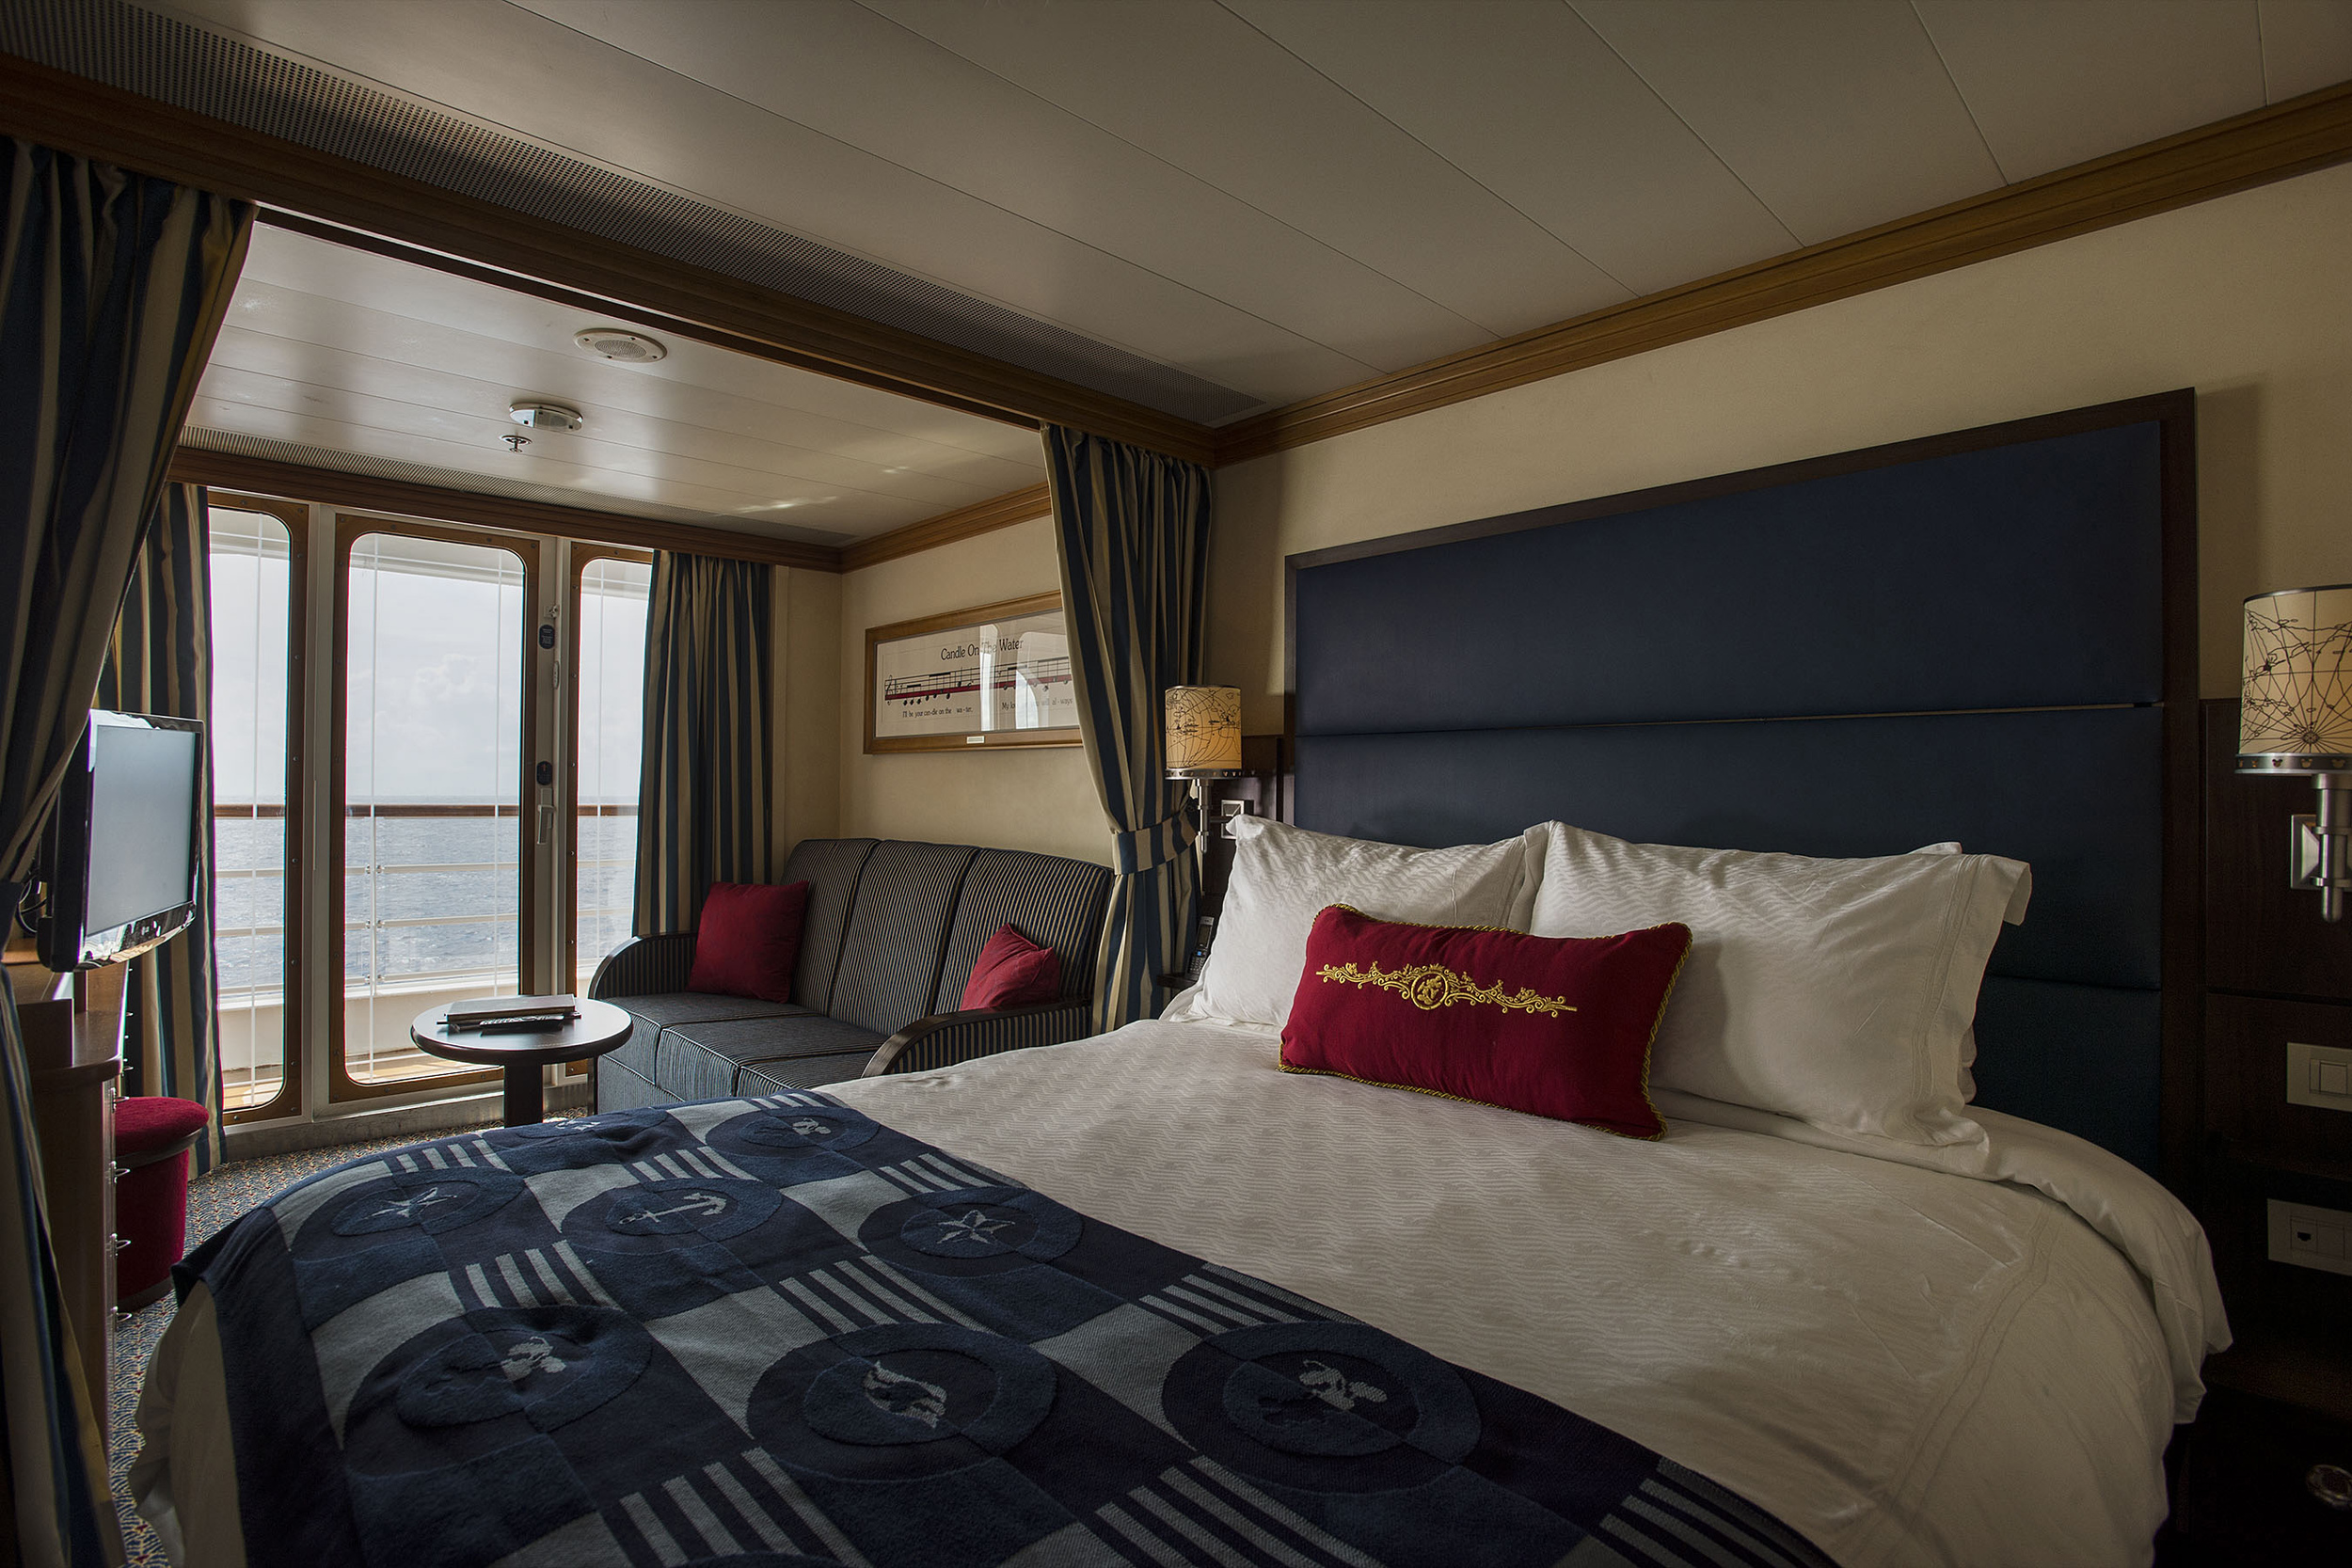 3/Larger staterooms with a split bathroom